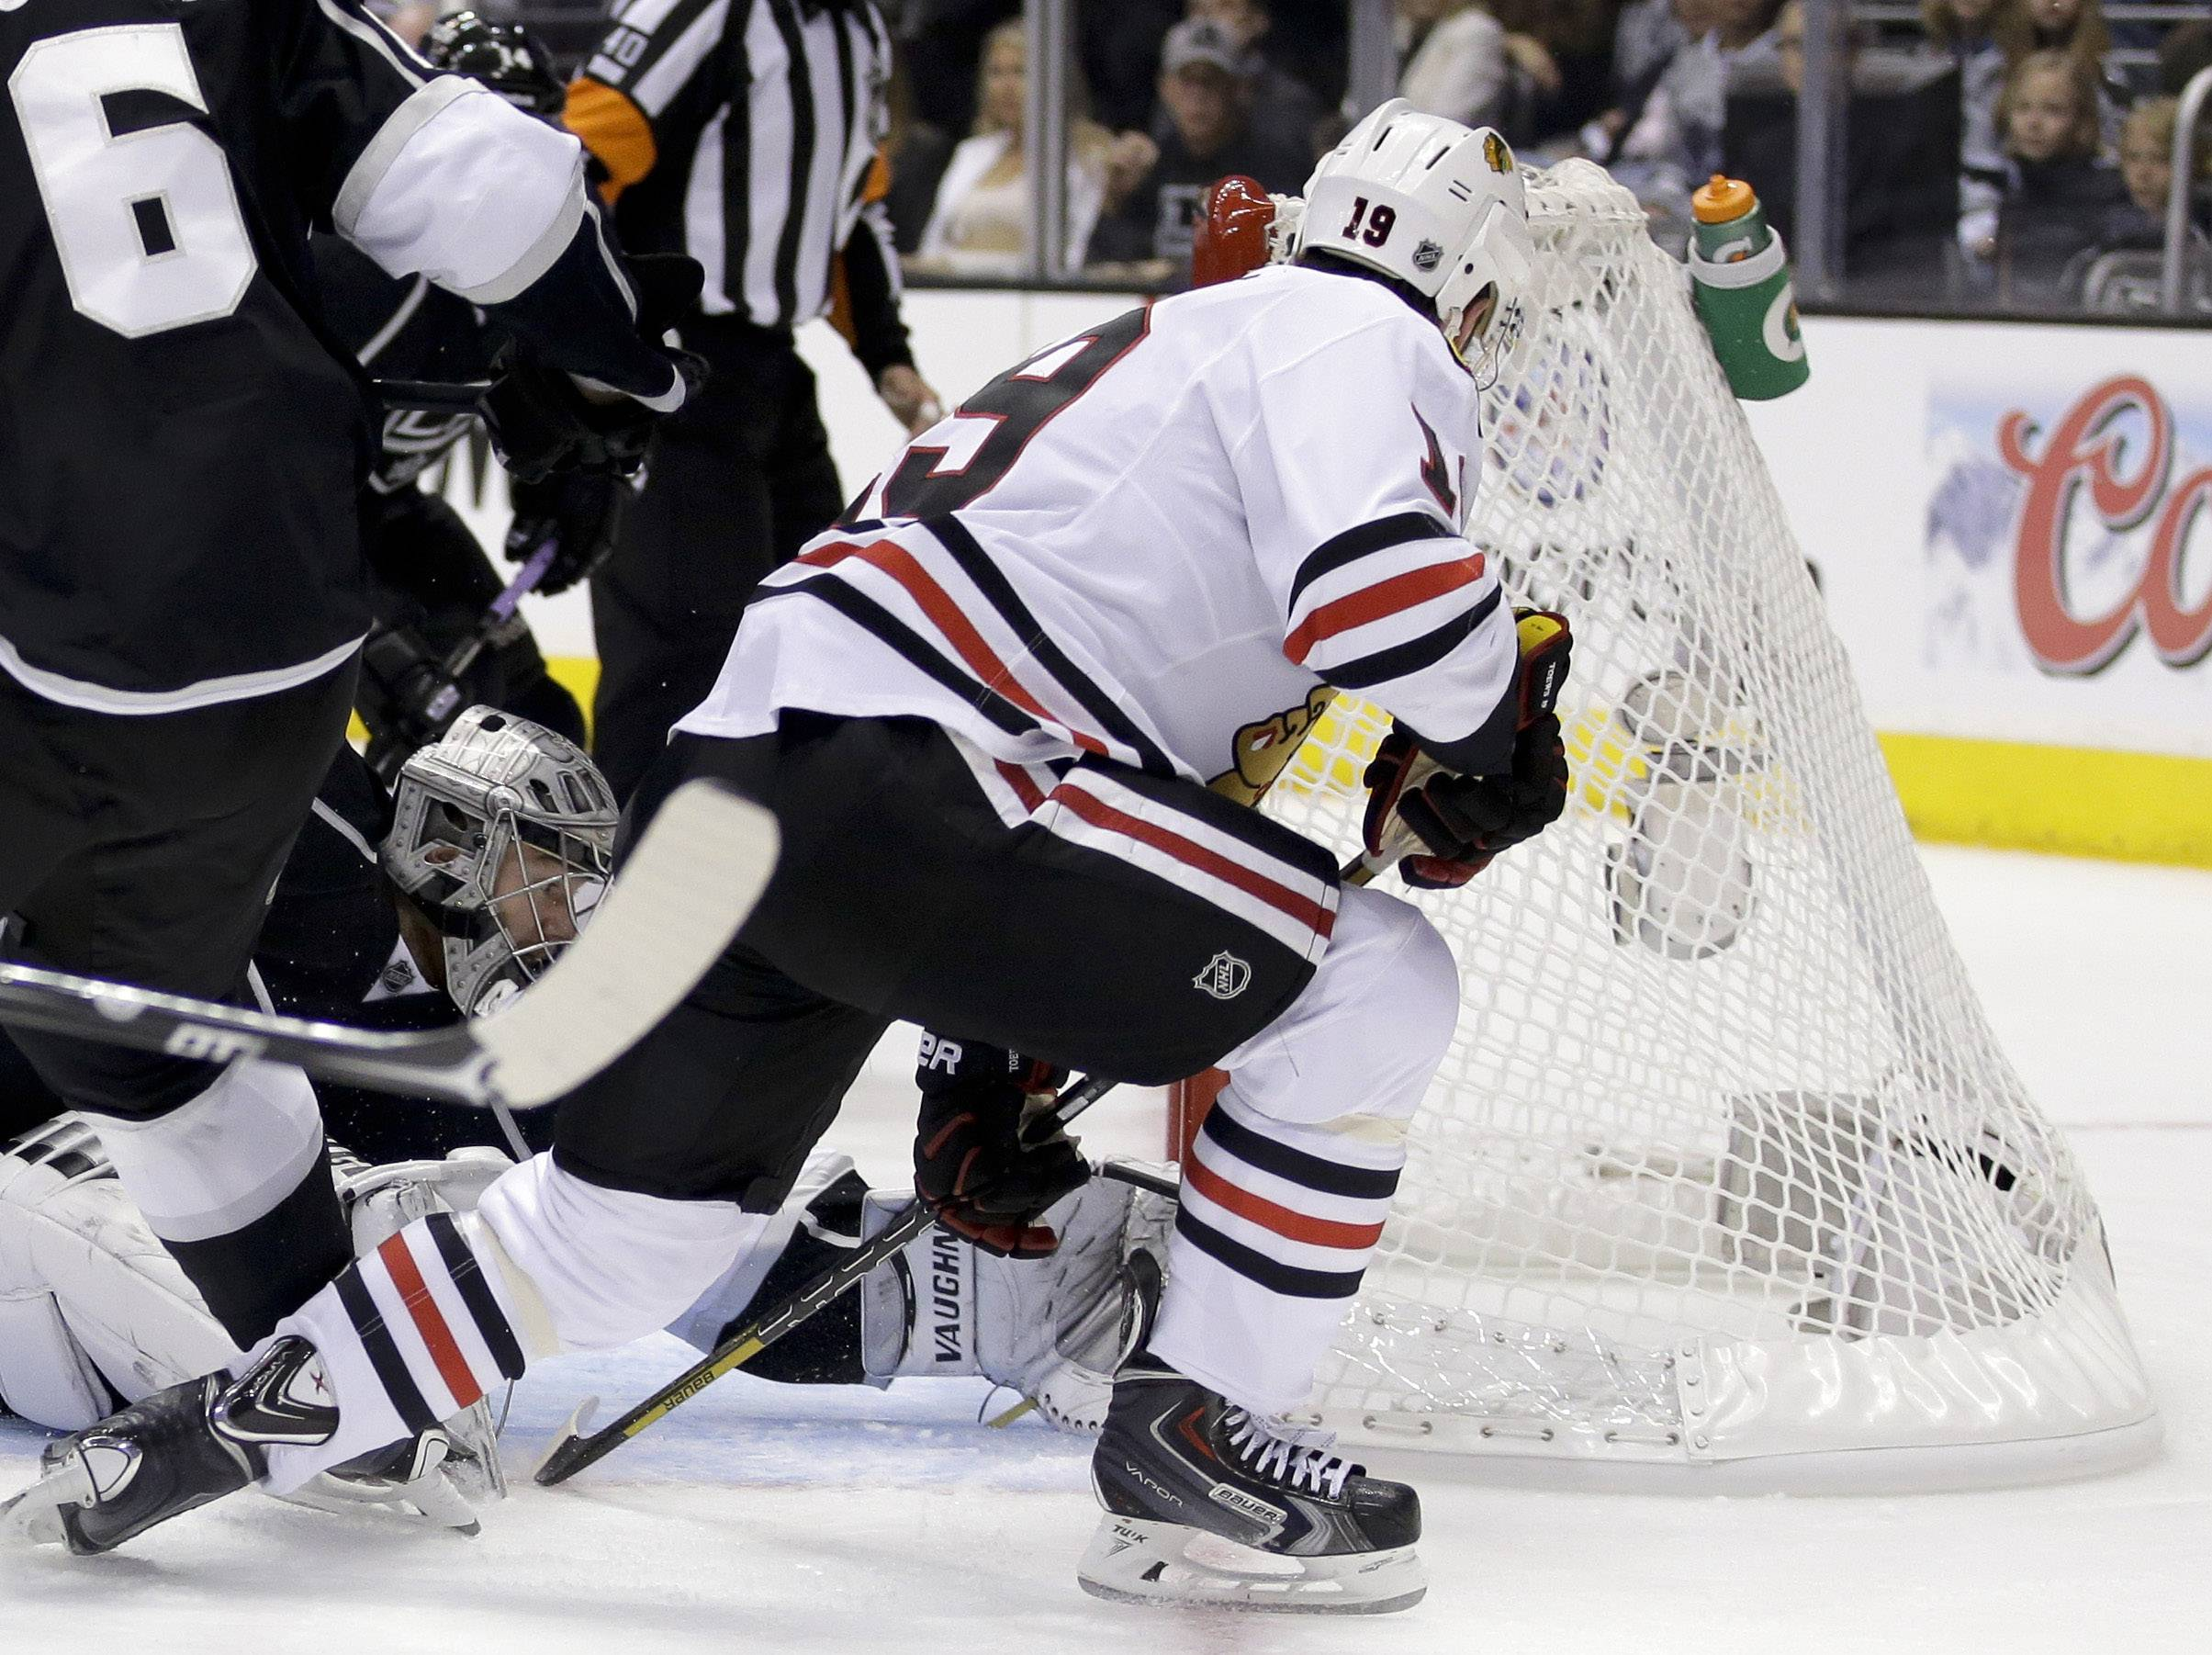 Chicago Blackhawks center Jonathan Toews, right, scores past Los Angeles Kings goalie Jonathan Quick during the first period of Game 3 of the Western Conference finals of the NHL hockey Stanley Cup playoffs in Los Angeles, Saturday, May 24, 2014.